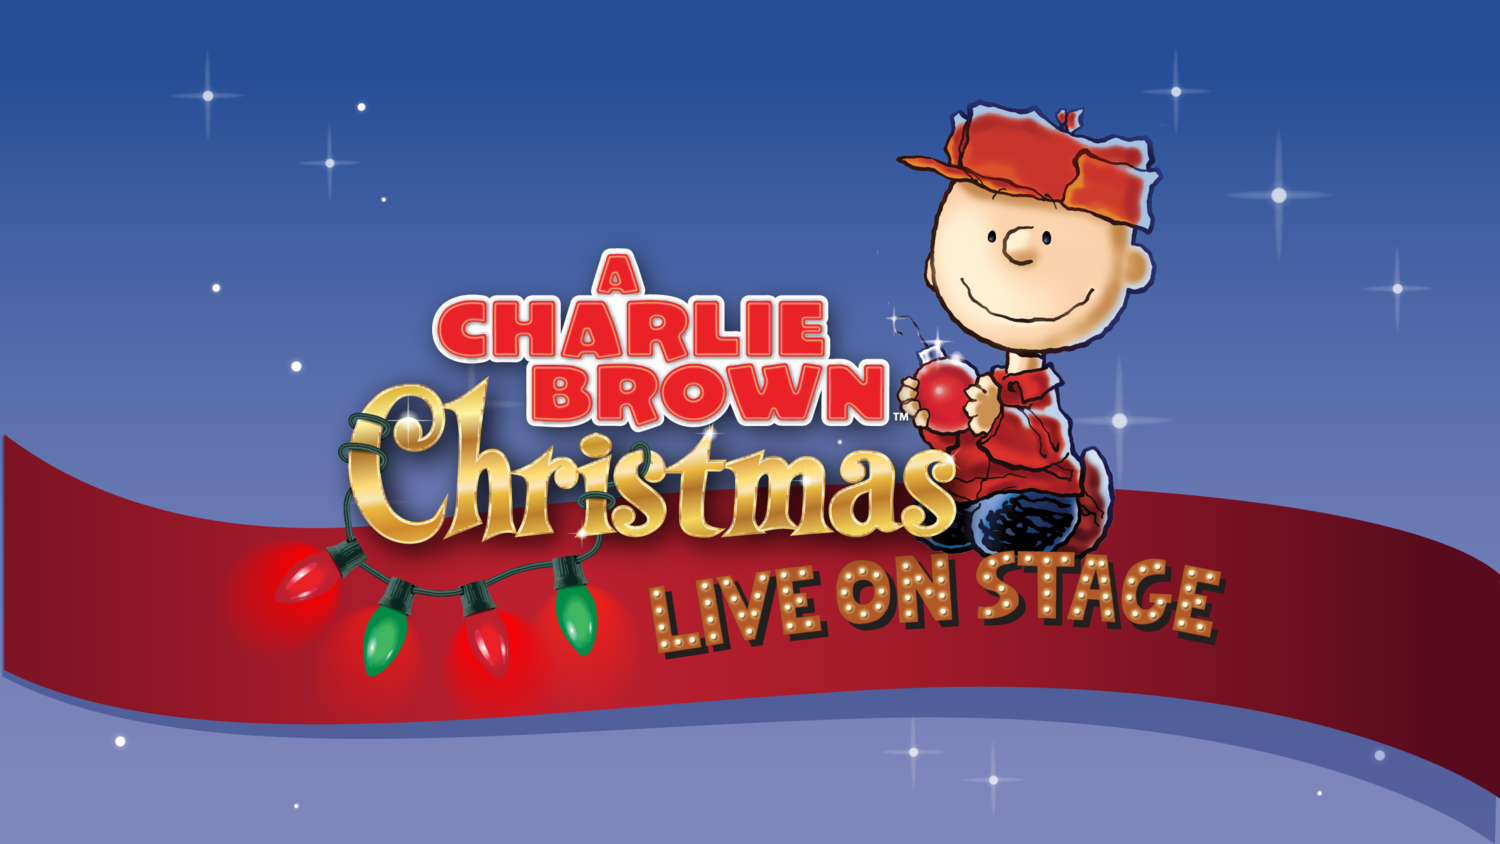 A Charlie Brown Christmas Live On Stage.A Charlie Brown Christmas Live On Stage Lowell Memorial